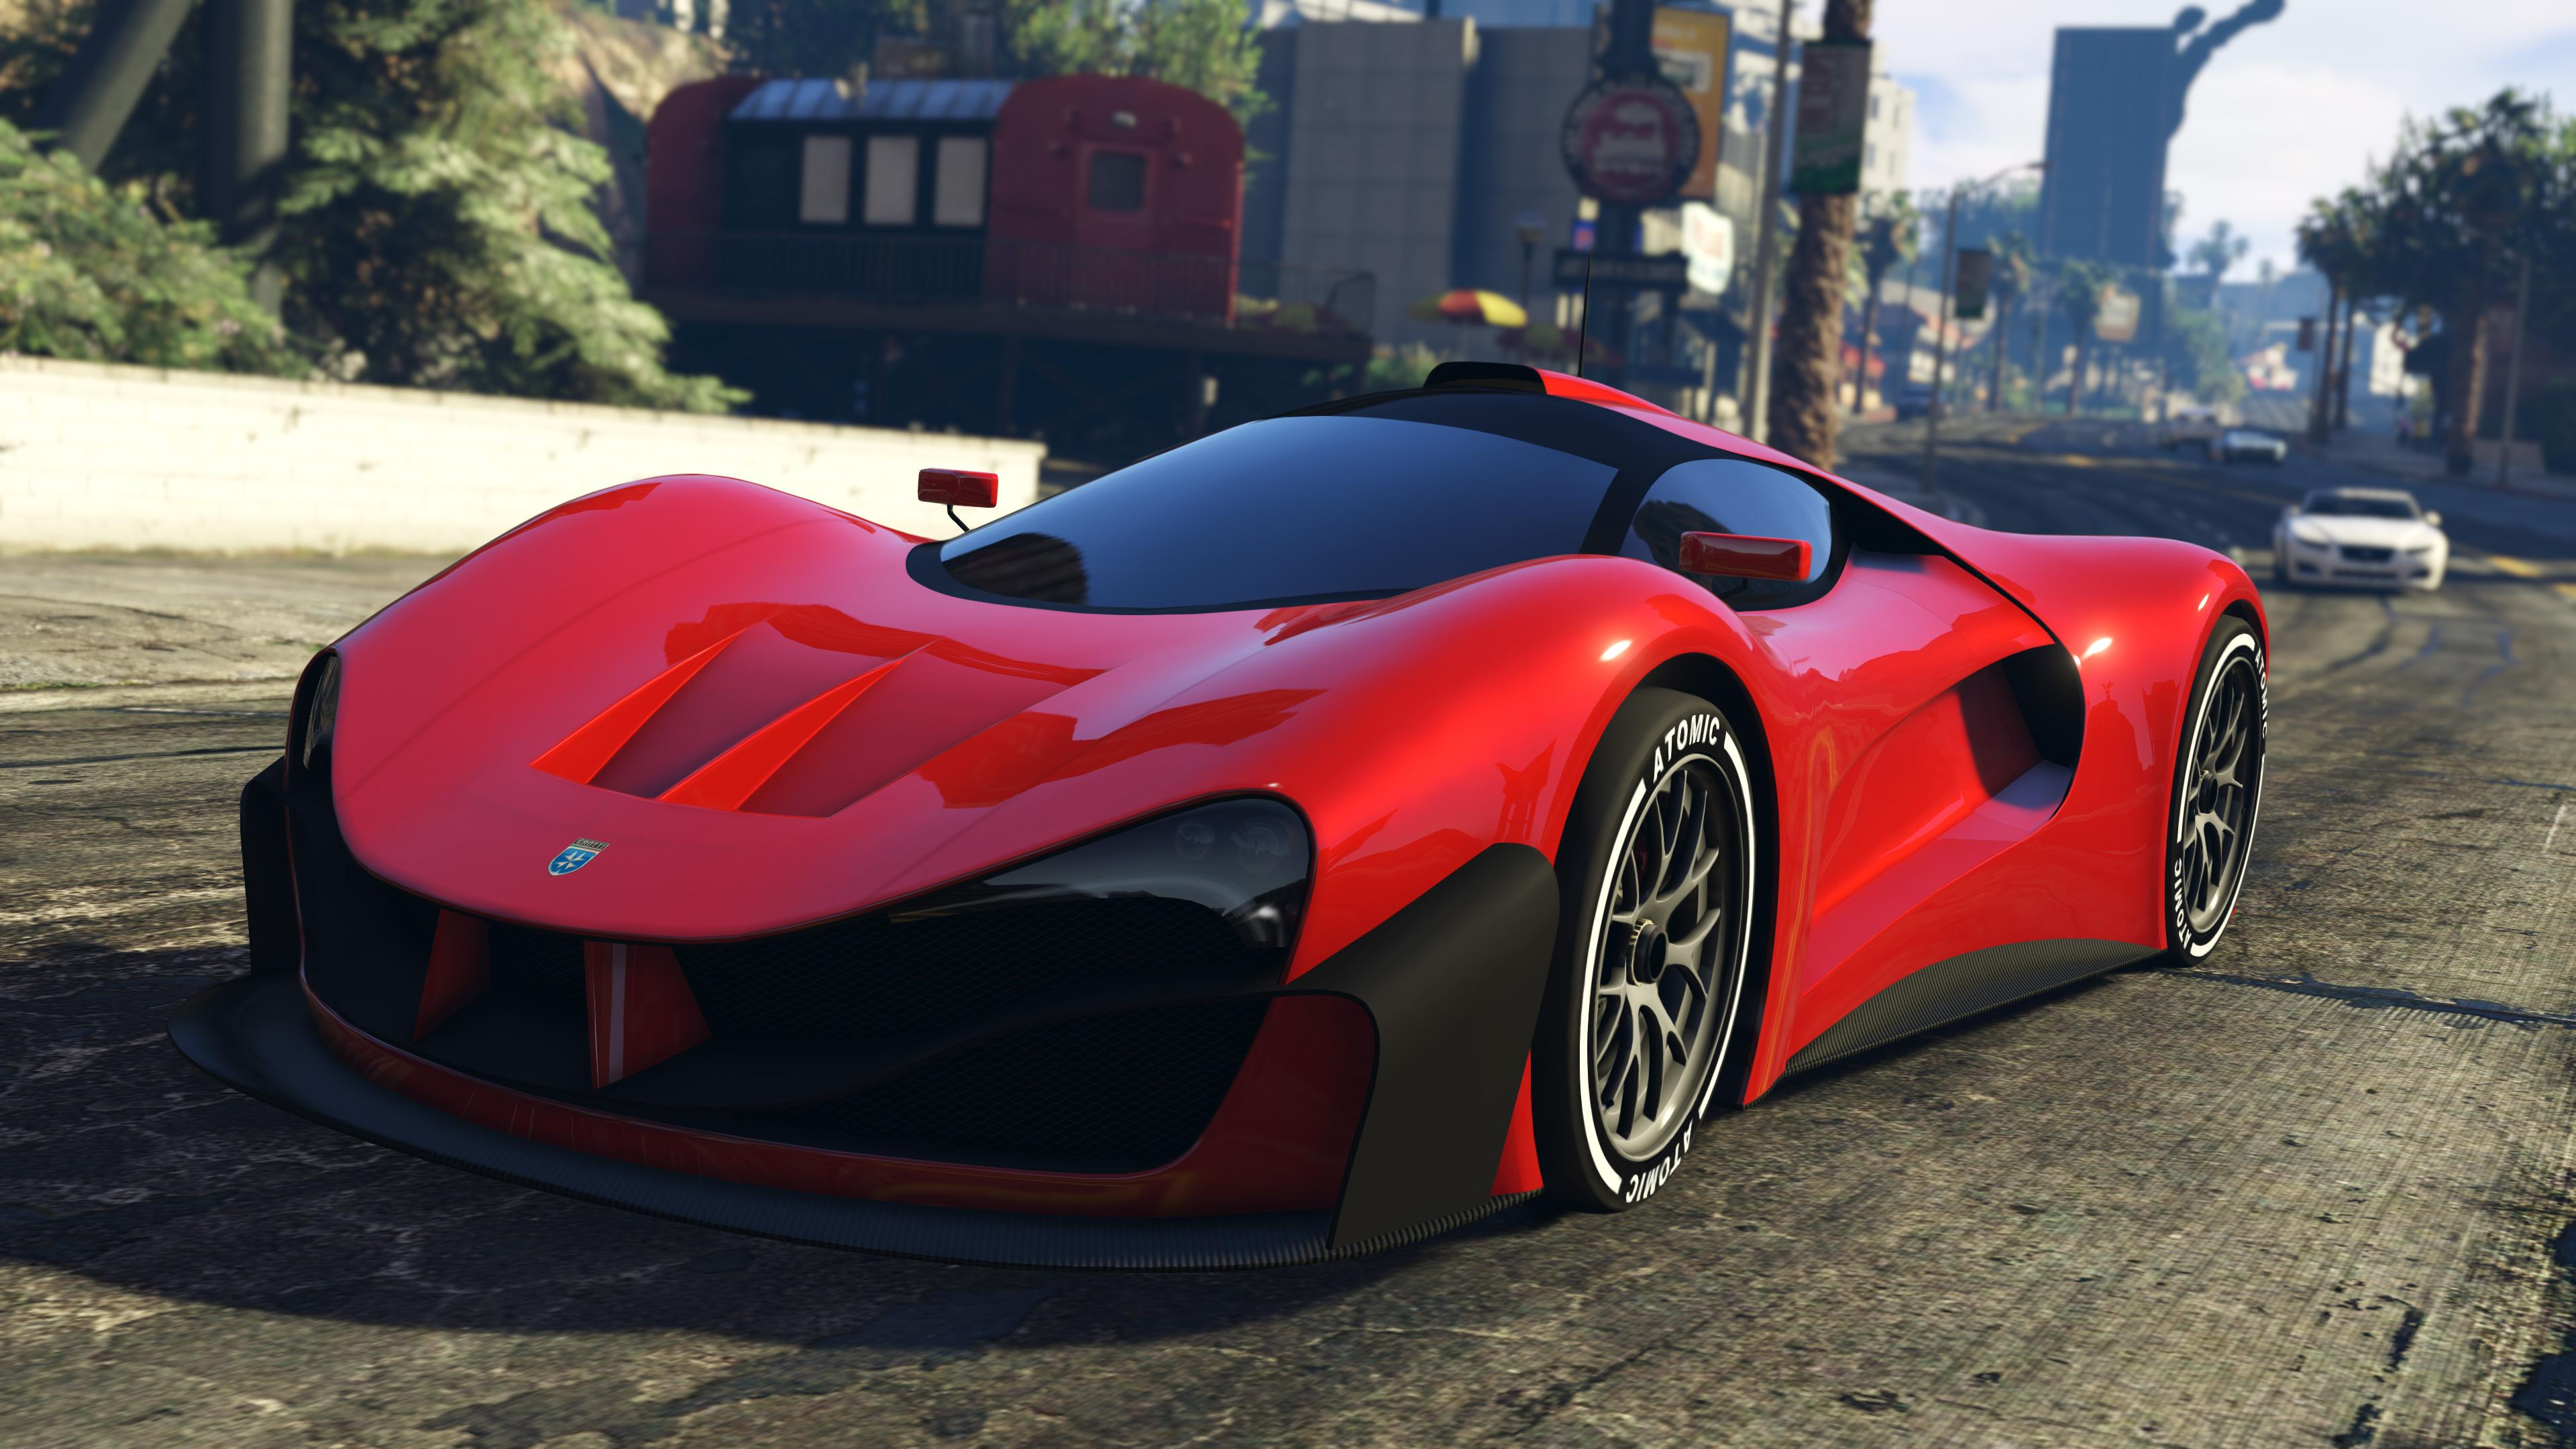 GTA 5 remains the unrivaled king of open world RPGs set in modern times